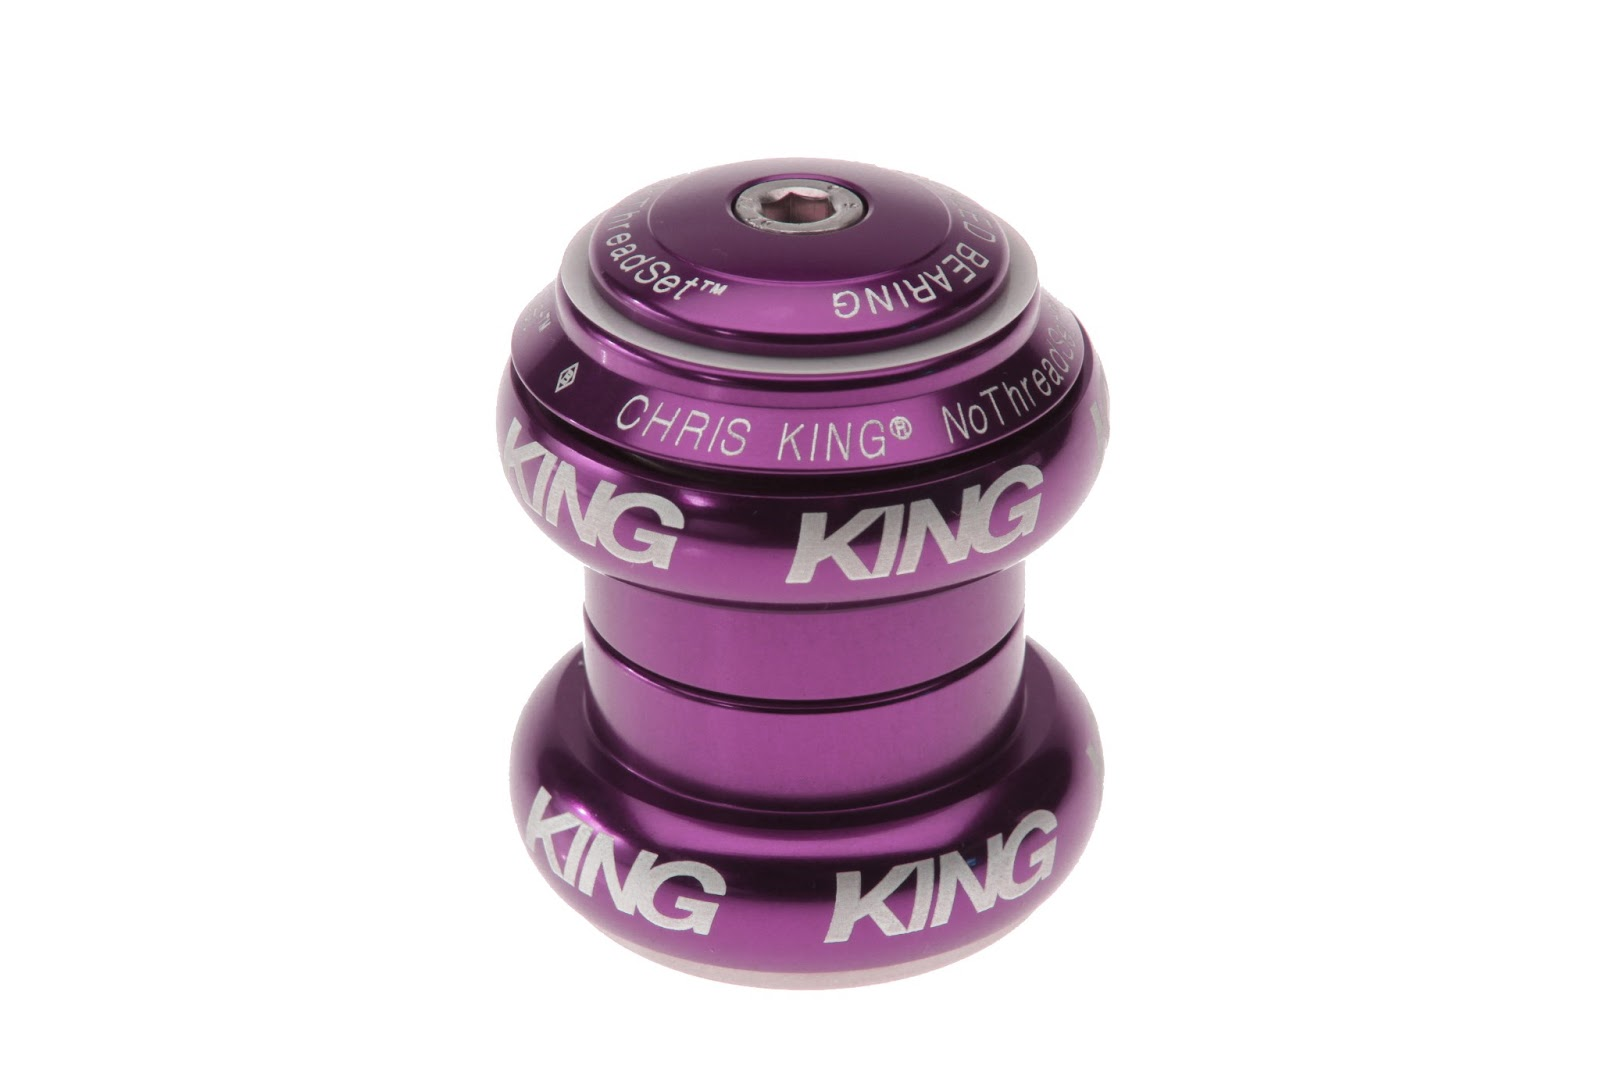 The limited edition purple Chris King NoThreadset headset will be Chris King smooth and durable AND look distinctively awesome!